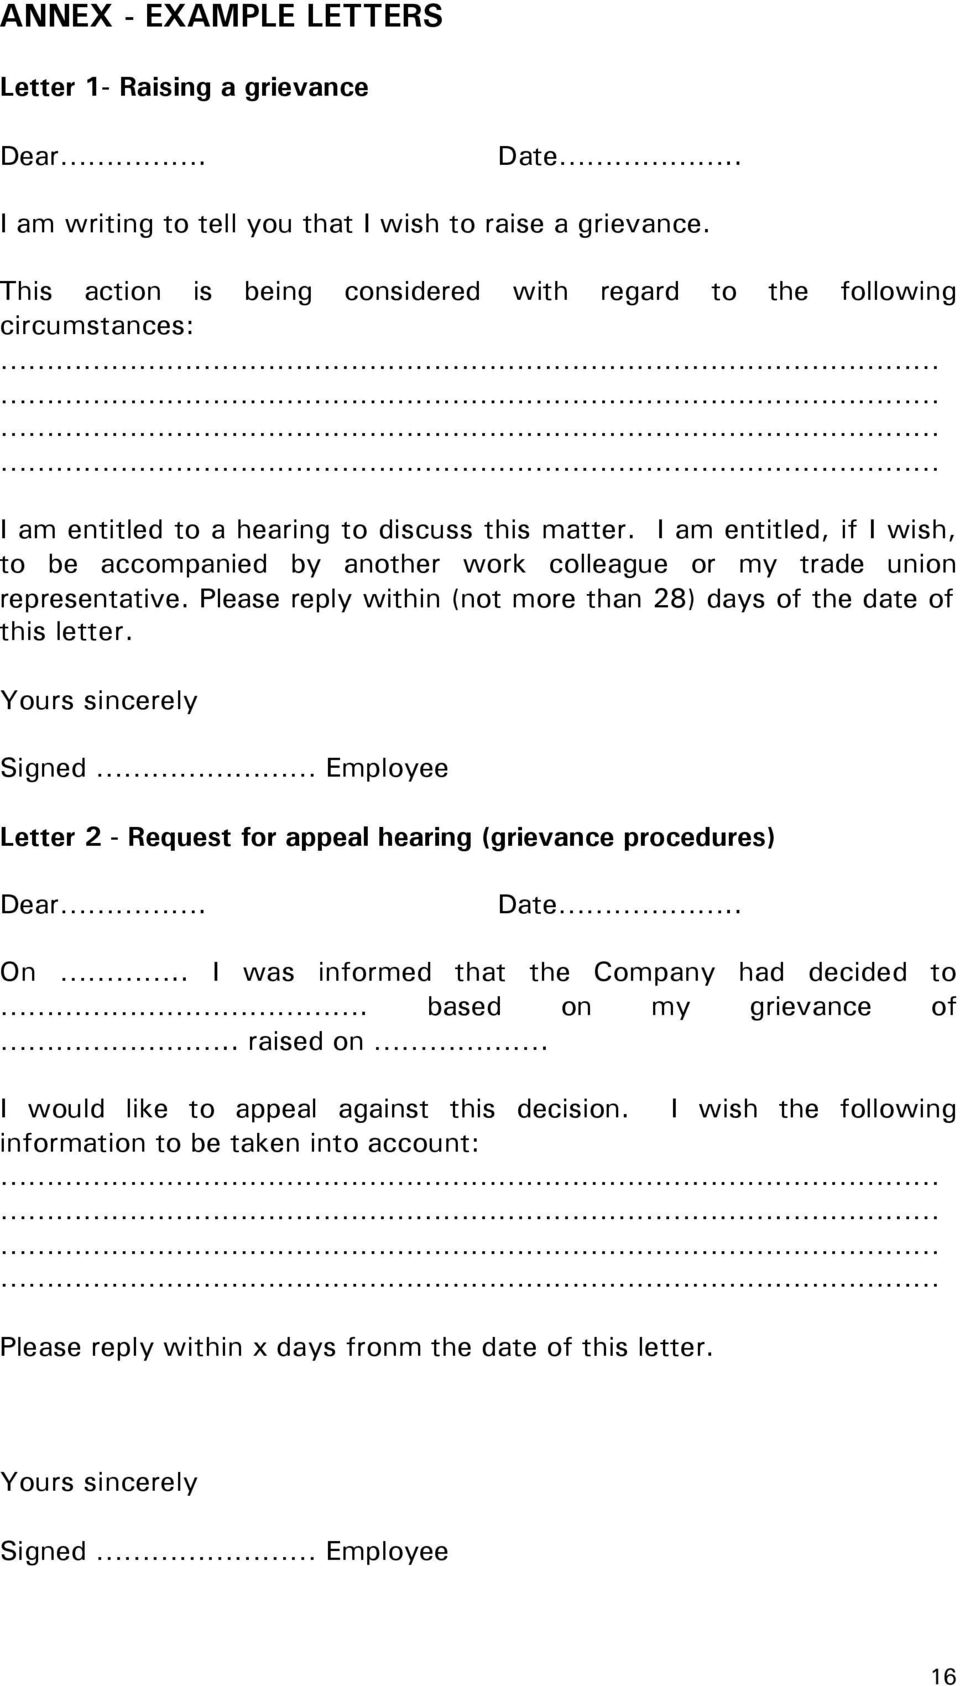 I am entitled, if I wish, to be accompanied by another work colleague or my trade union representative. Please reply within (not more than 28) days of the date of this letter.